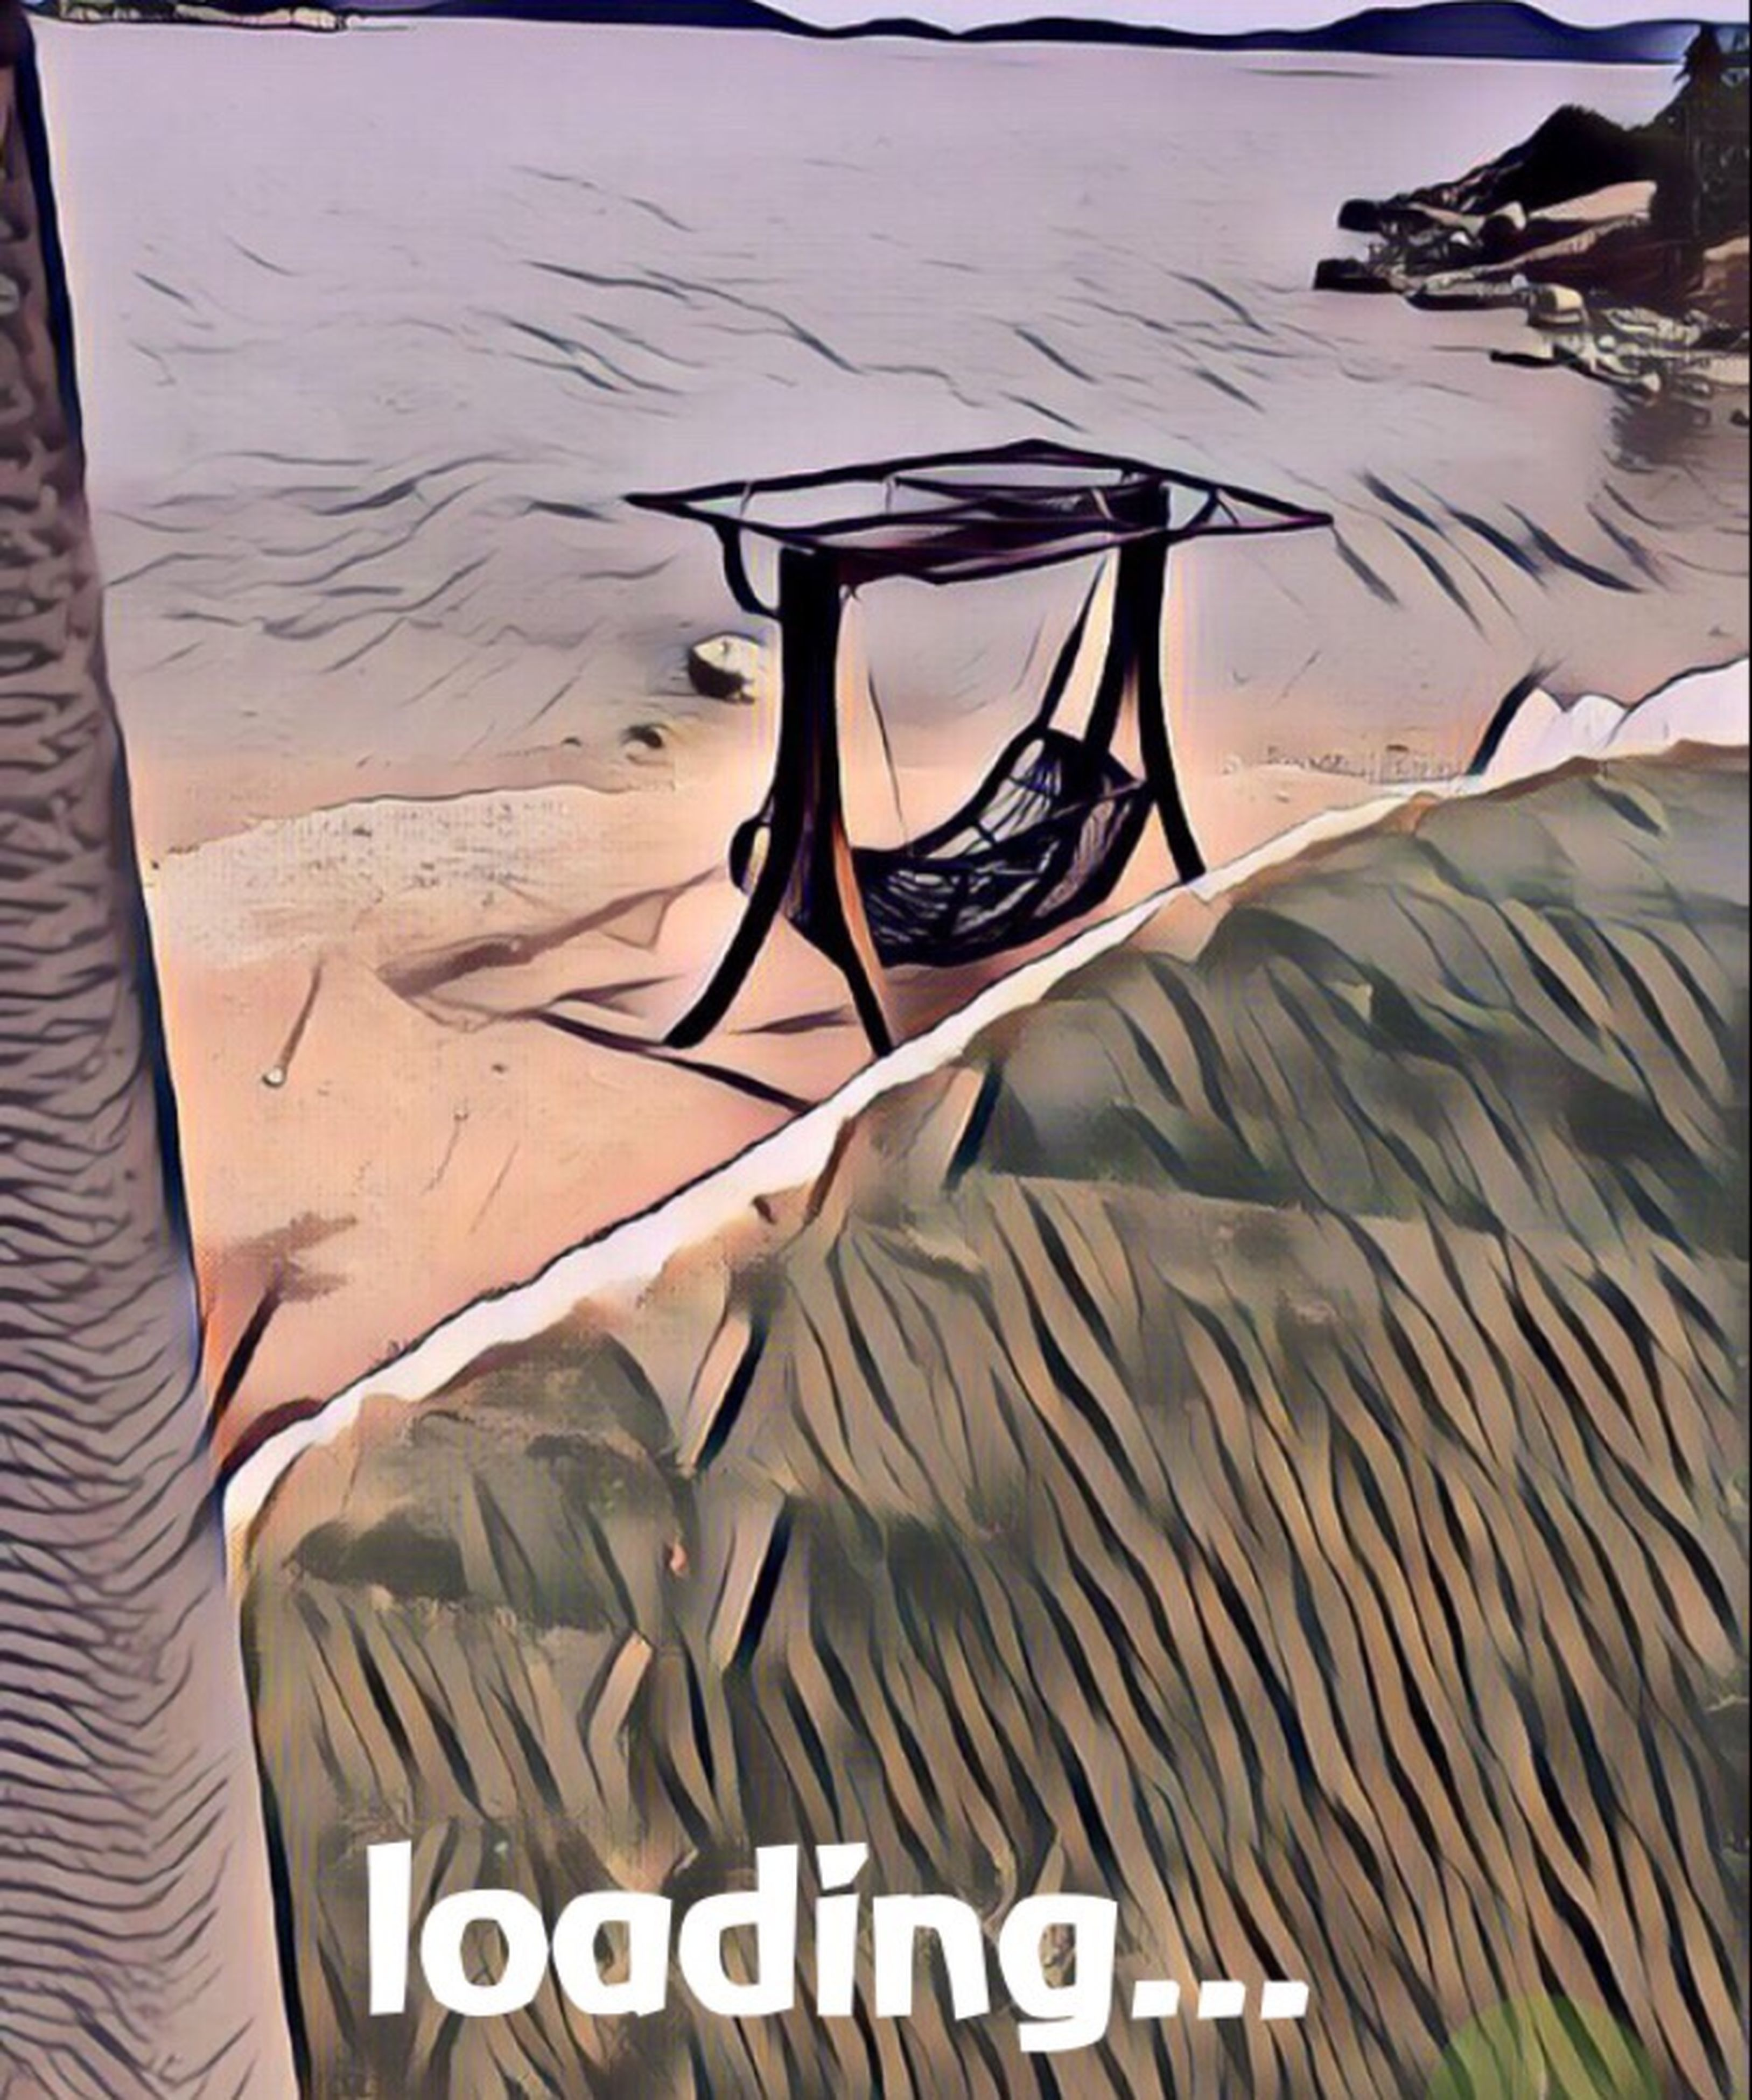 sand, beach, text, no people, outdoors, water, day, sea, nature, close-up